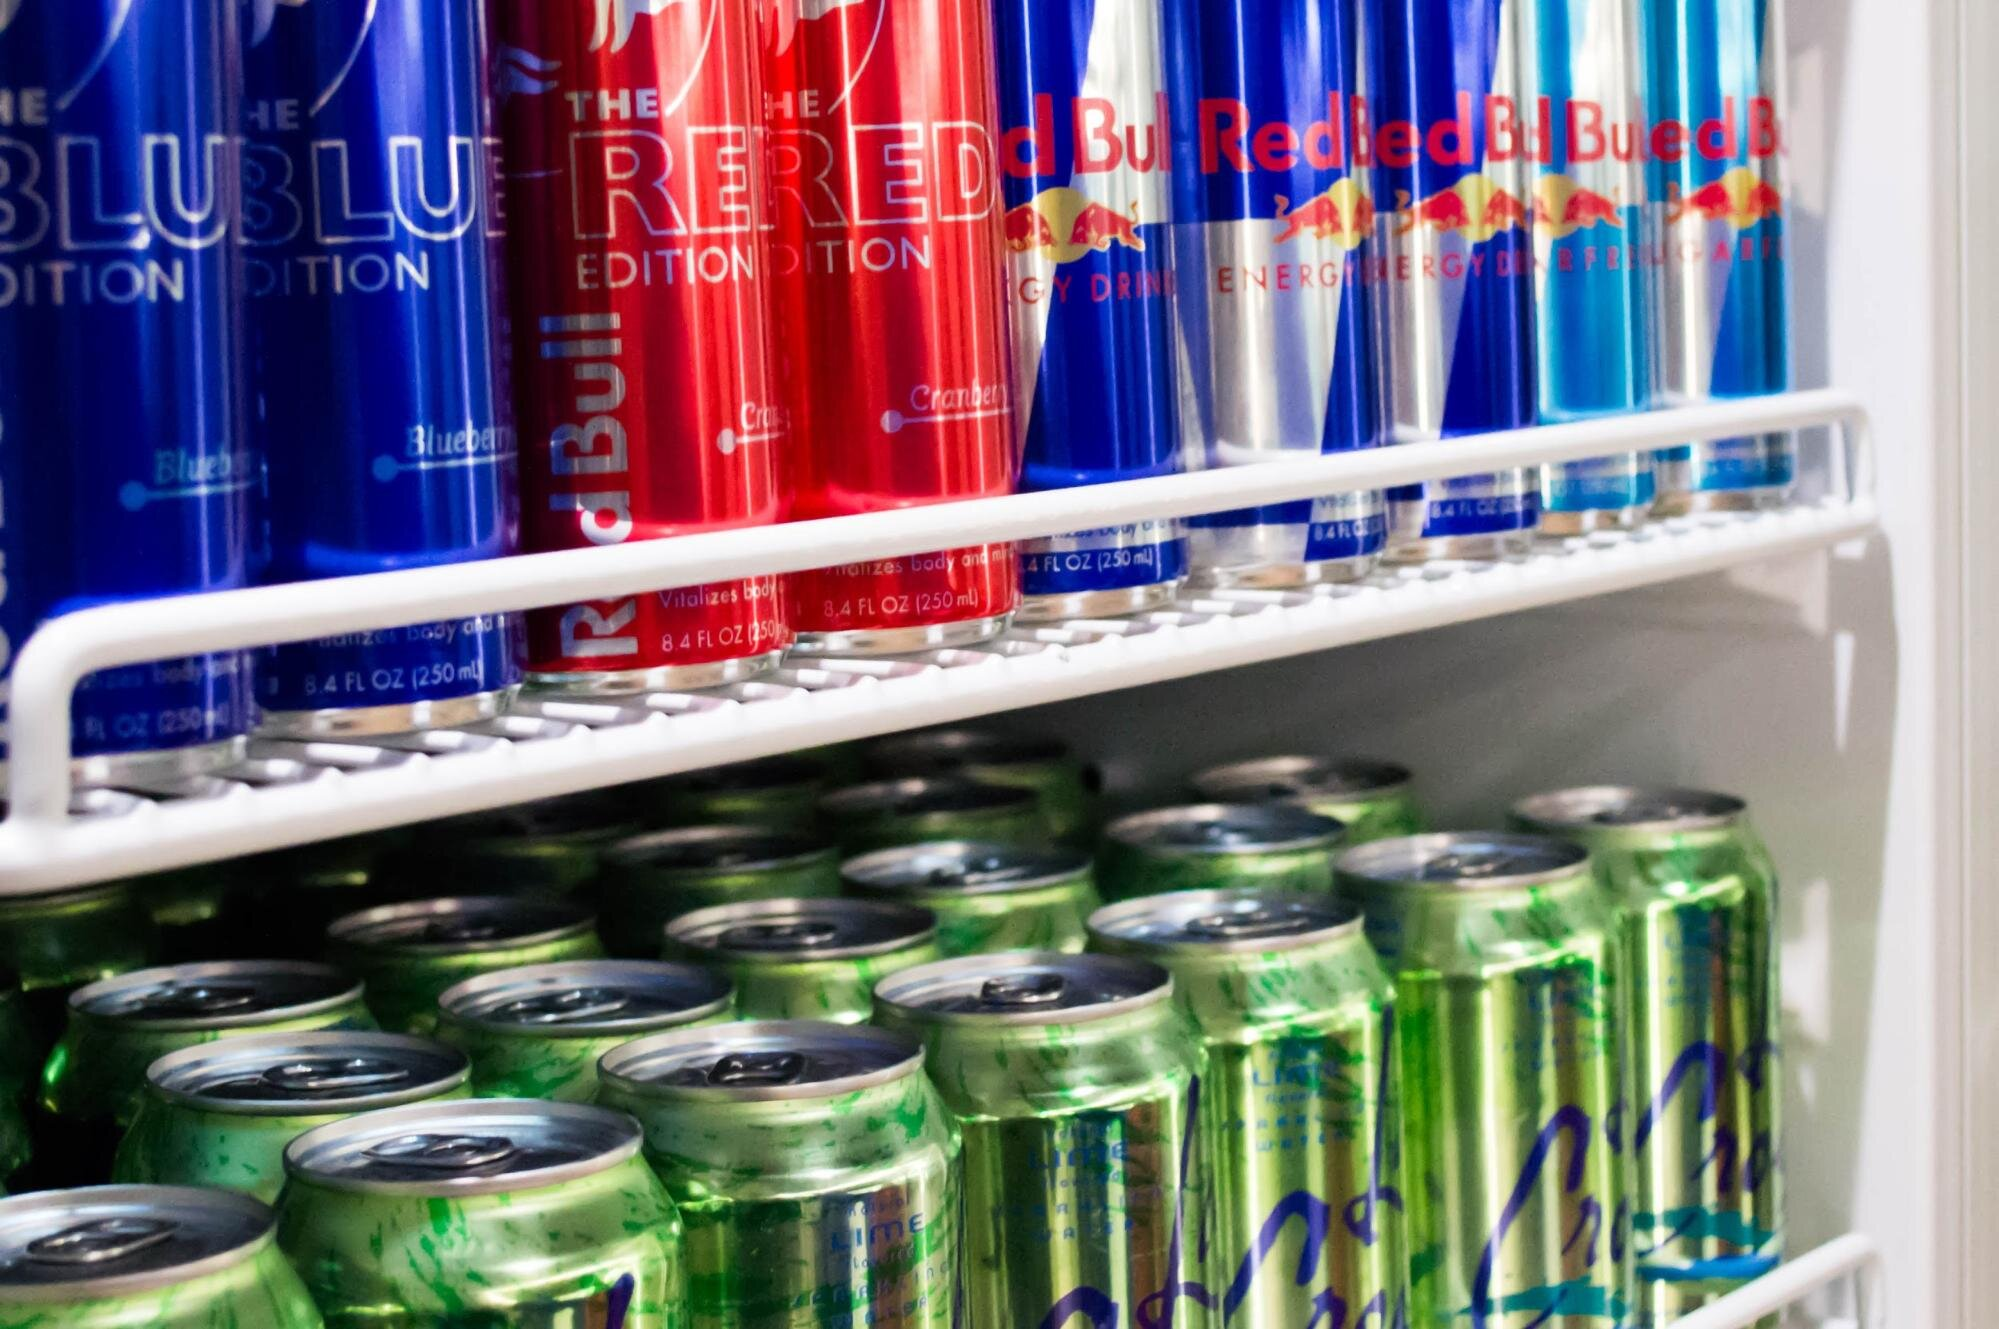 Energy drink cans inside a refrigerator